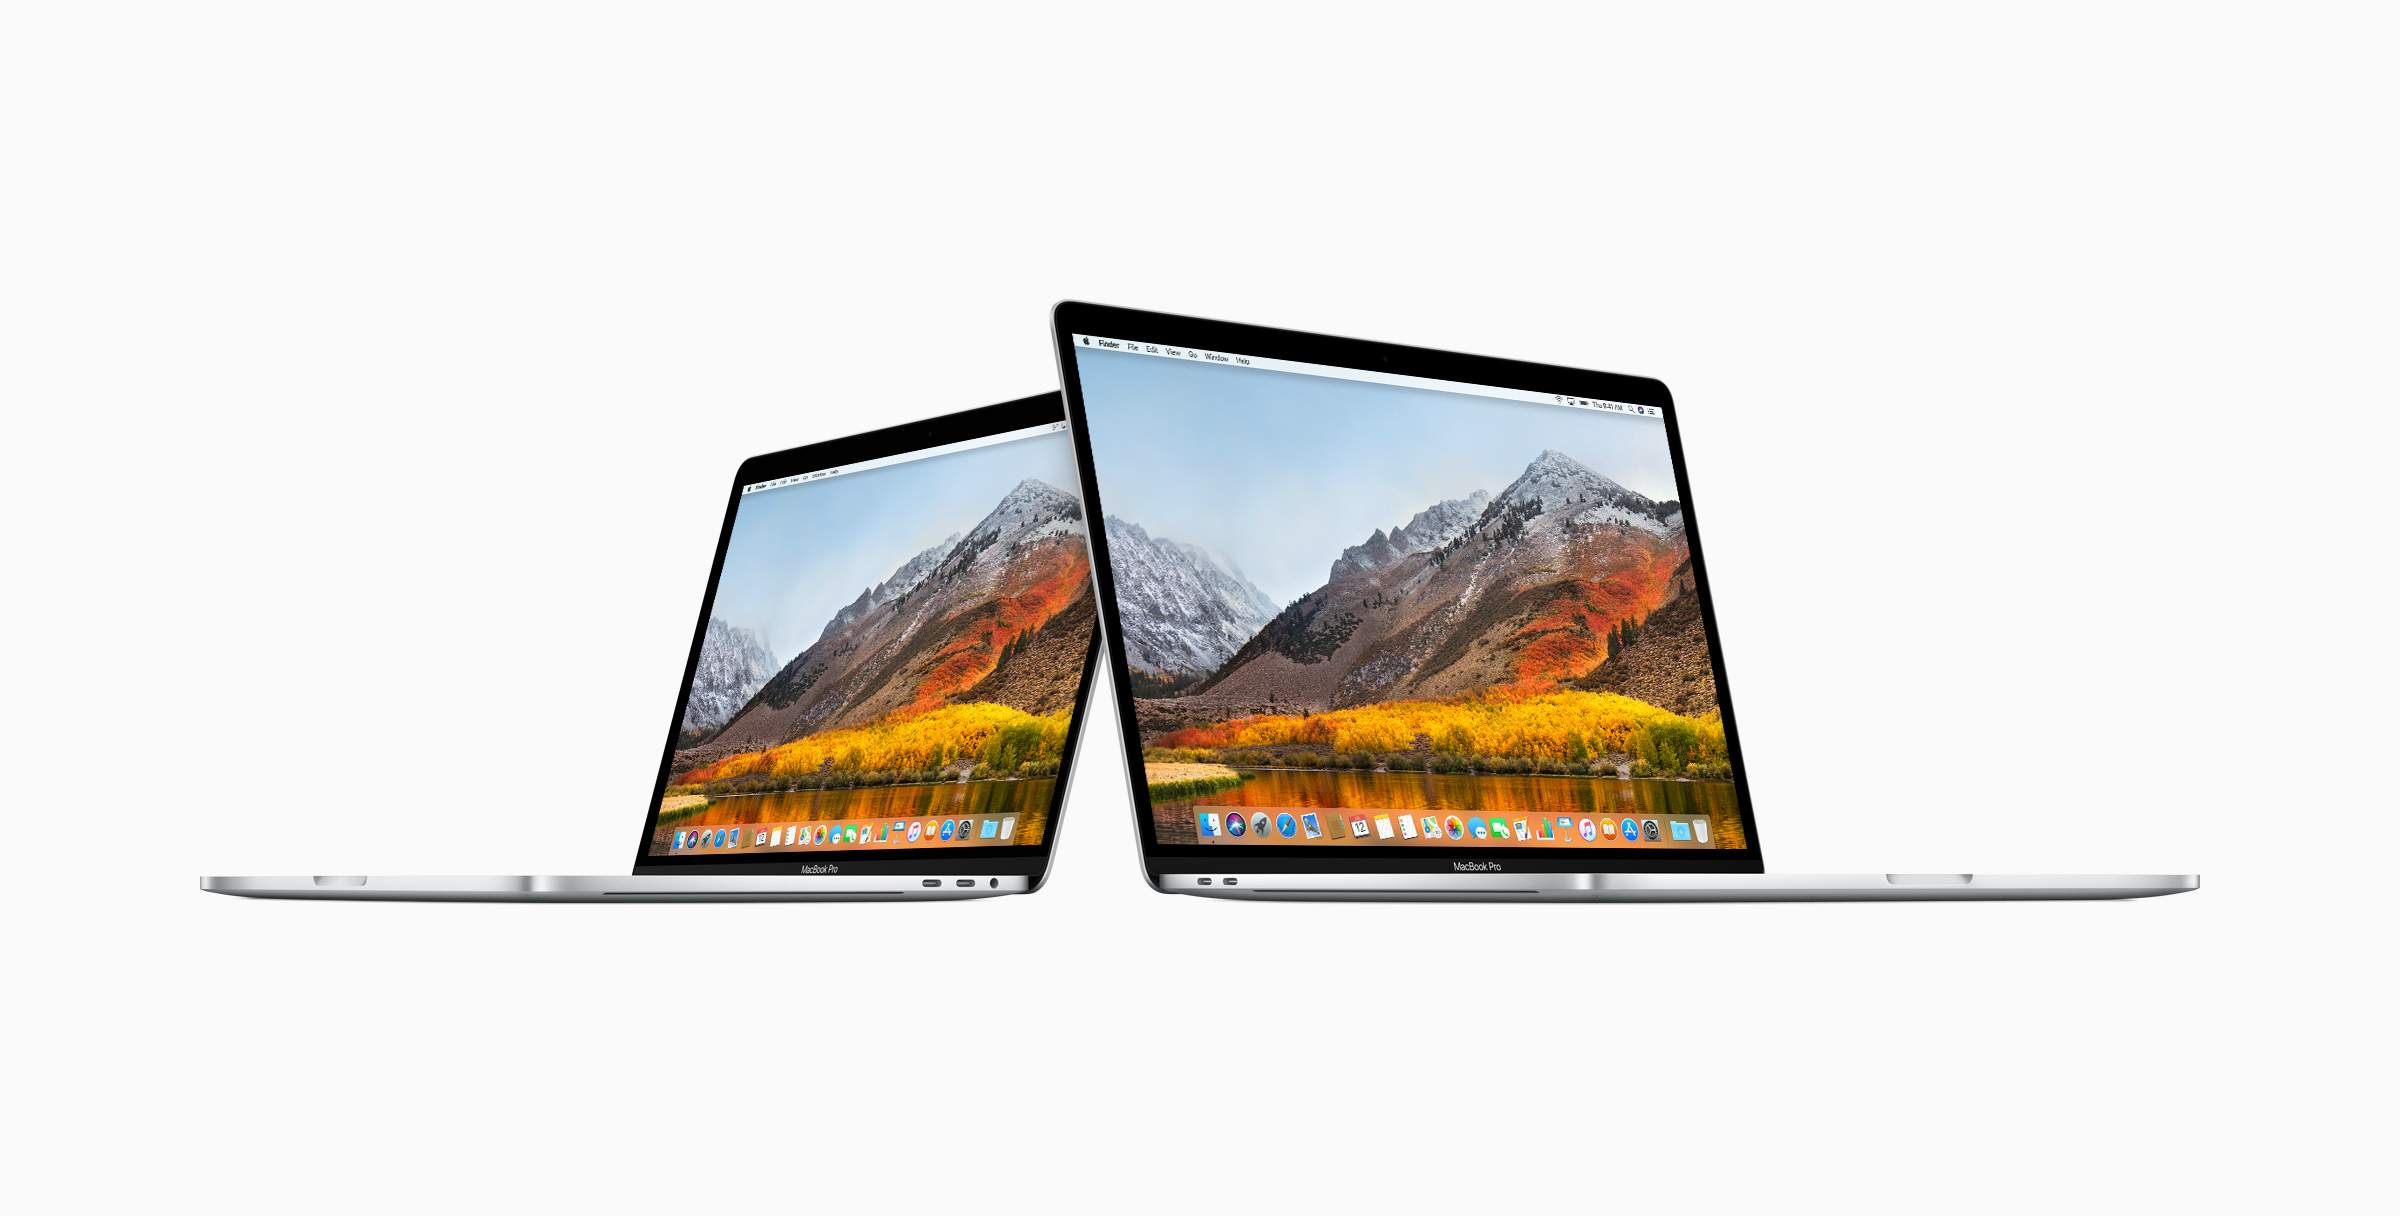 2018 Model Macbook Pro